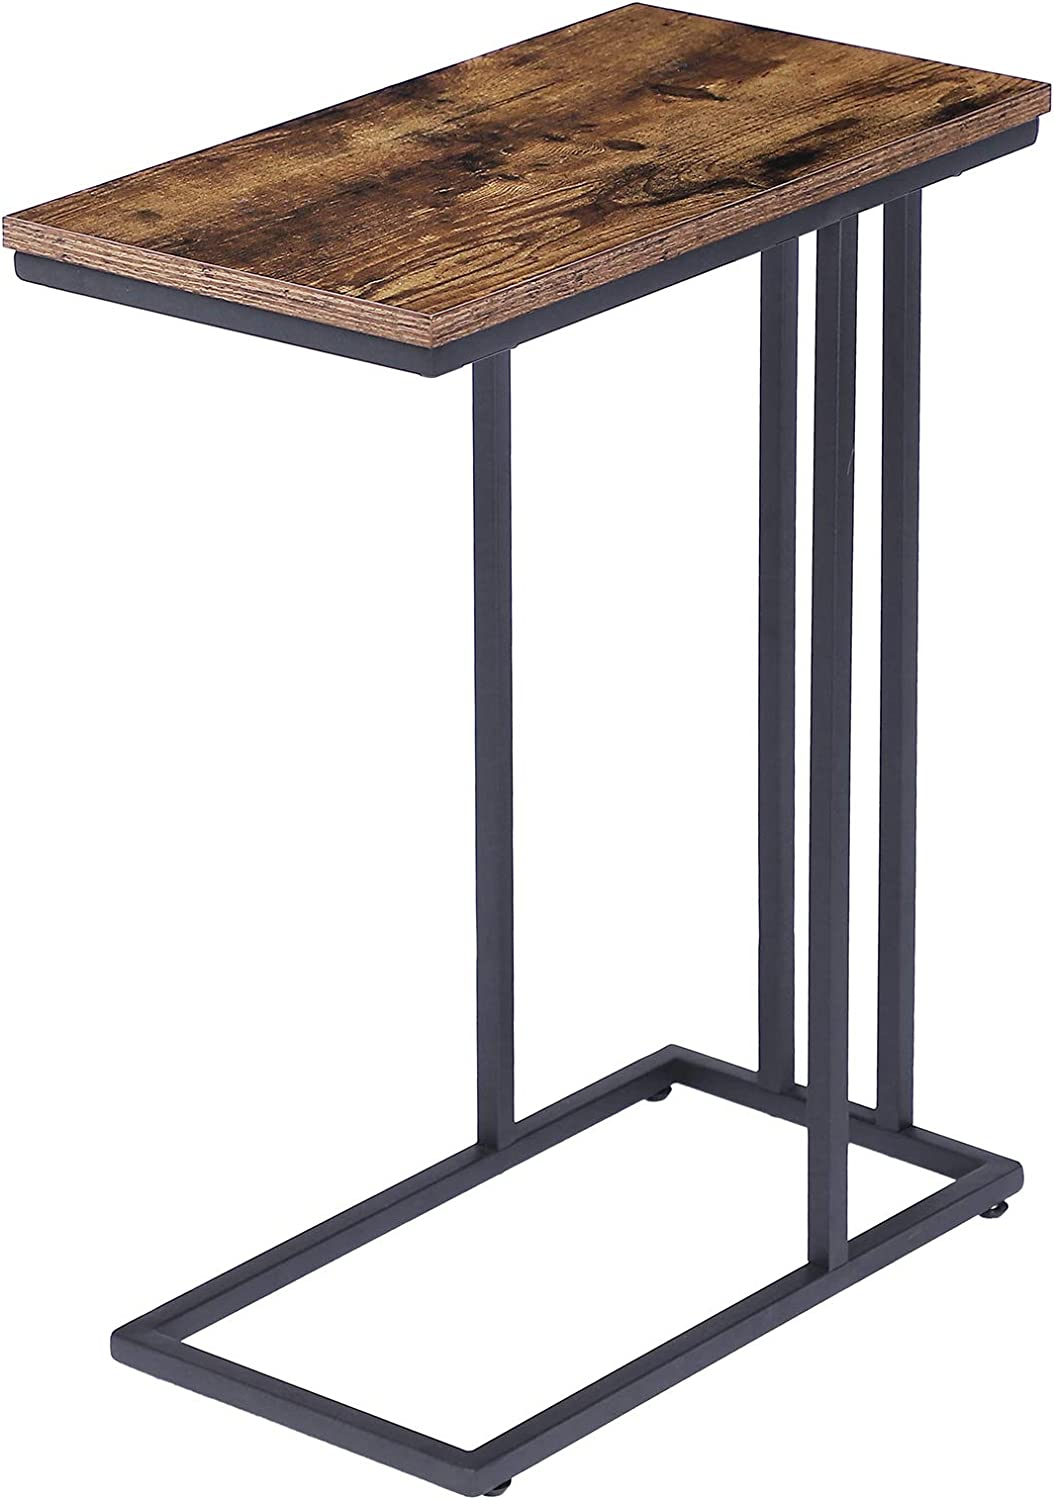 HOOBRO Side Table, Snack Table Heavy-Duty Sofa Side Table for Living Room, Bedroom, Easy Assembly, Space Saving, Wood Look Accent Furniture with Metal Frame, Rustic Brown BF02SF01